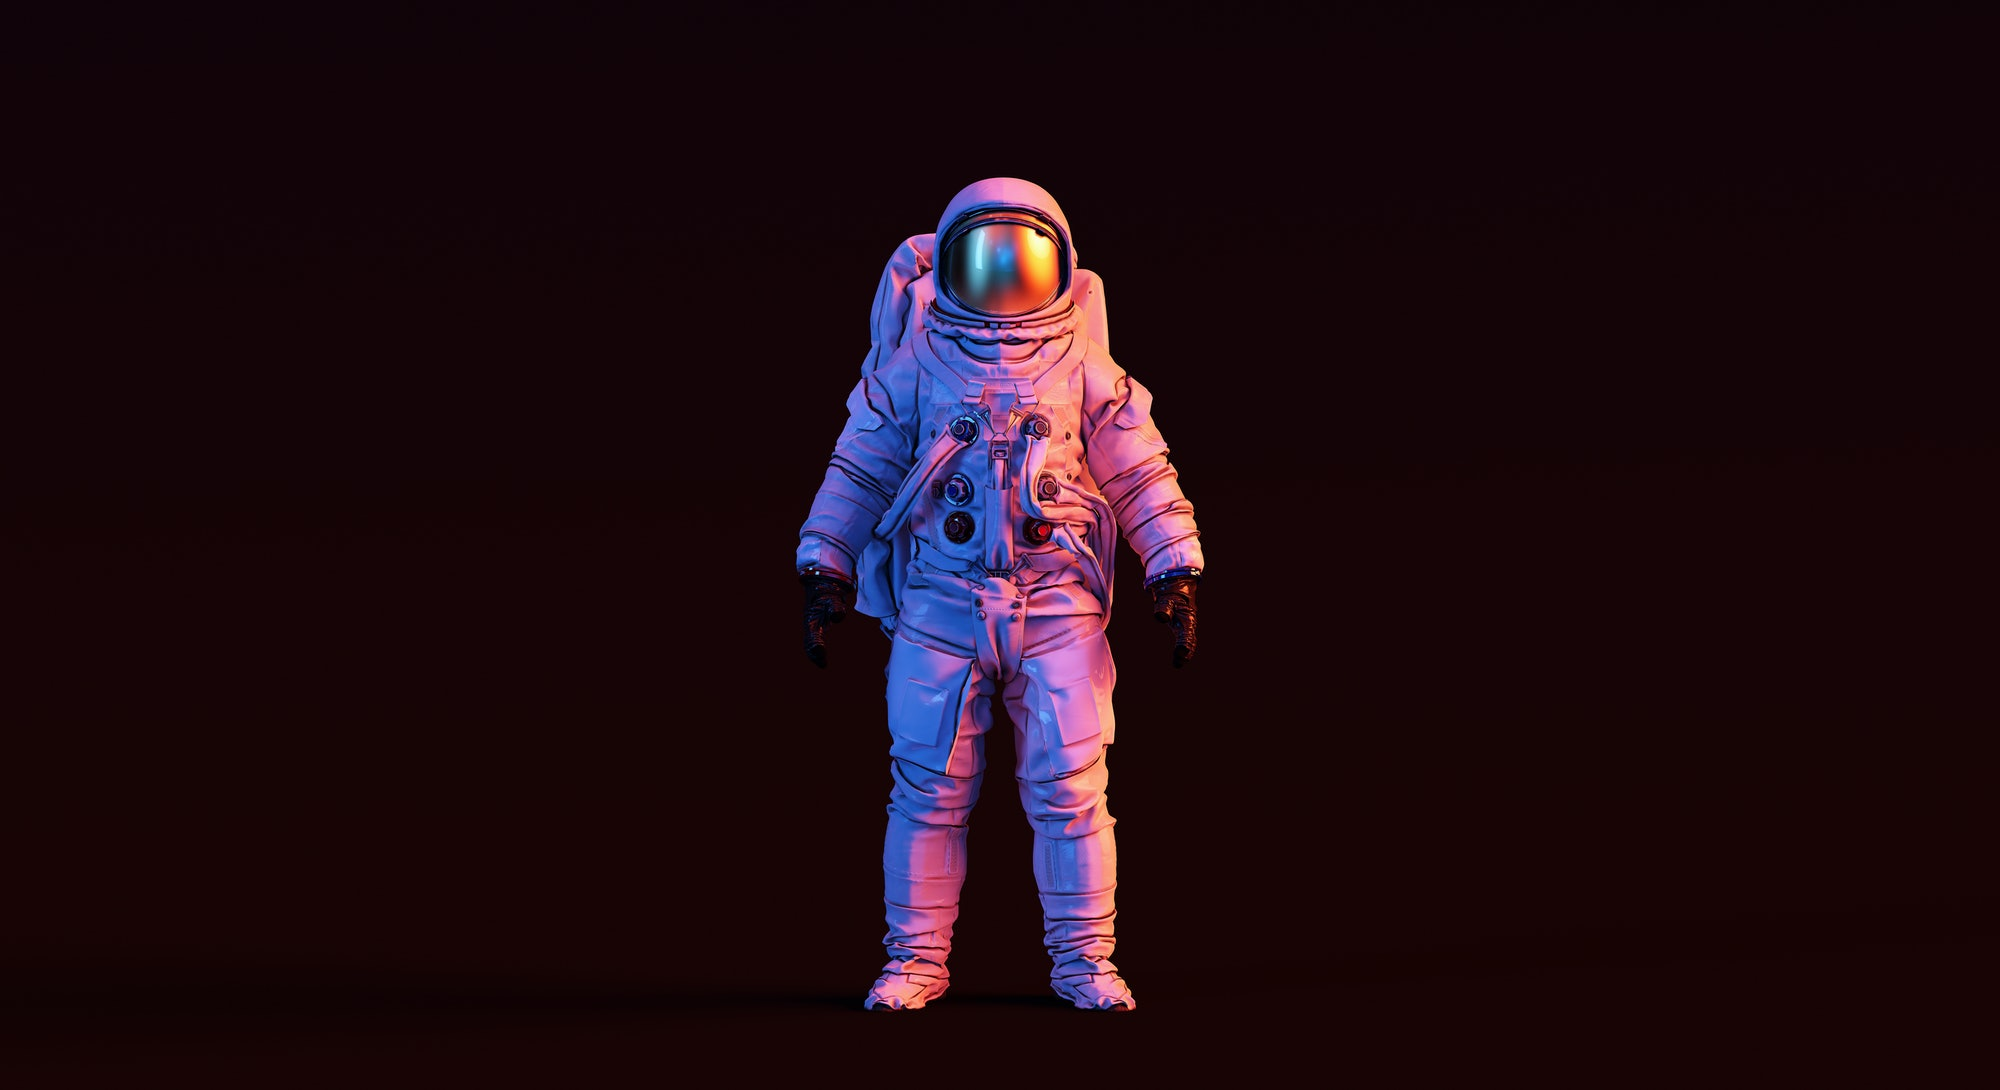 Astronaut with Gold Visor and White Spacesuit with Pink and Blue Moody 80s lighting Front 3d illustr...